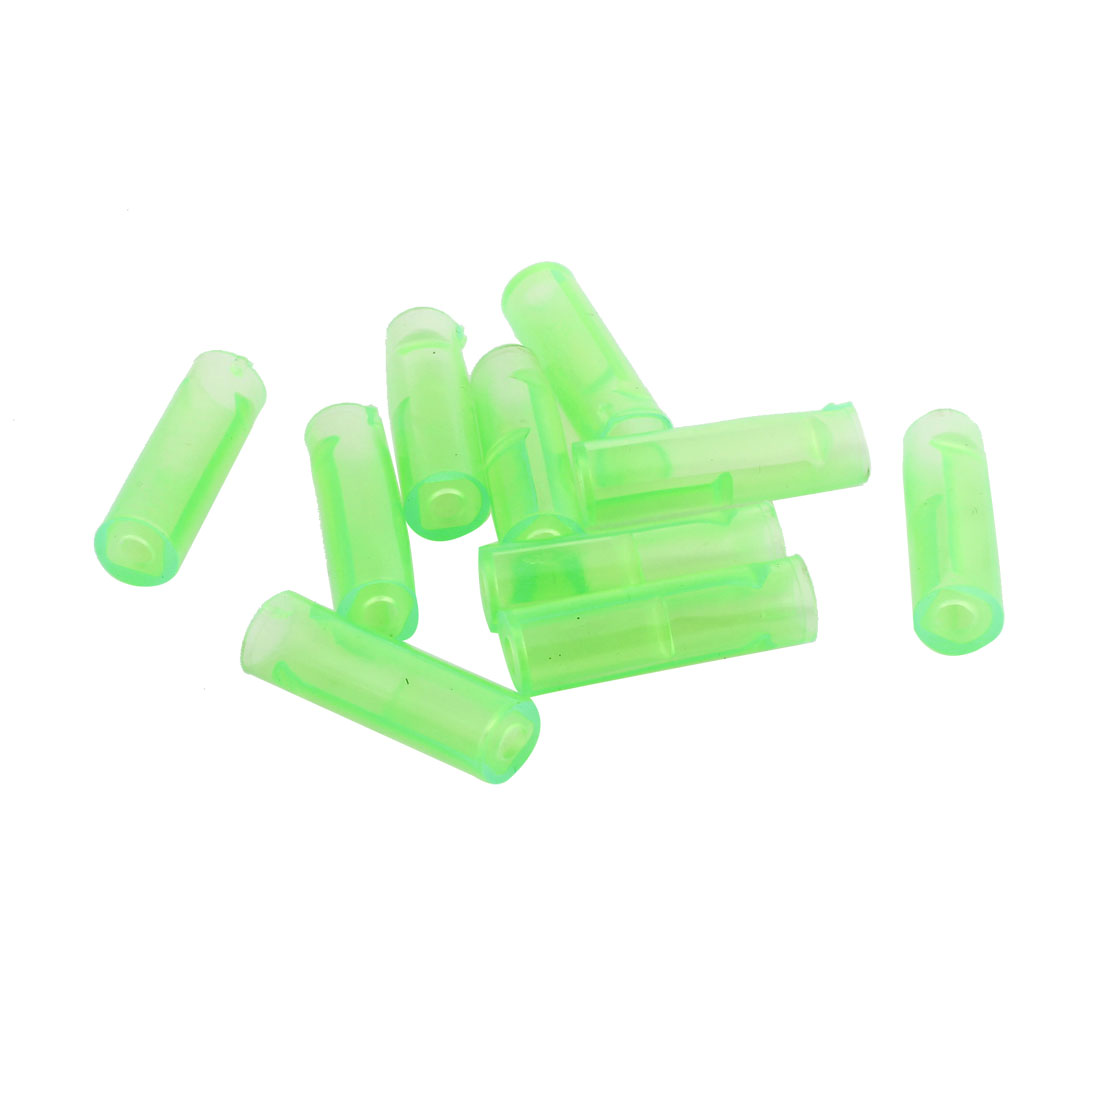 10 Pcs Green PVC Crimp Terminal Cover Sleeves 23mm x 6mm for Motorcycle